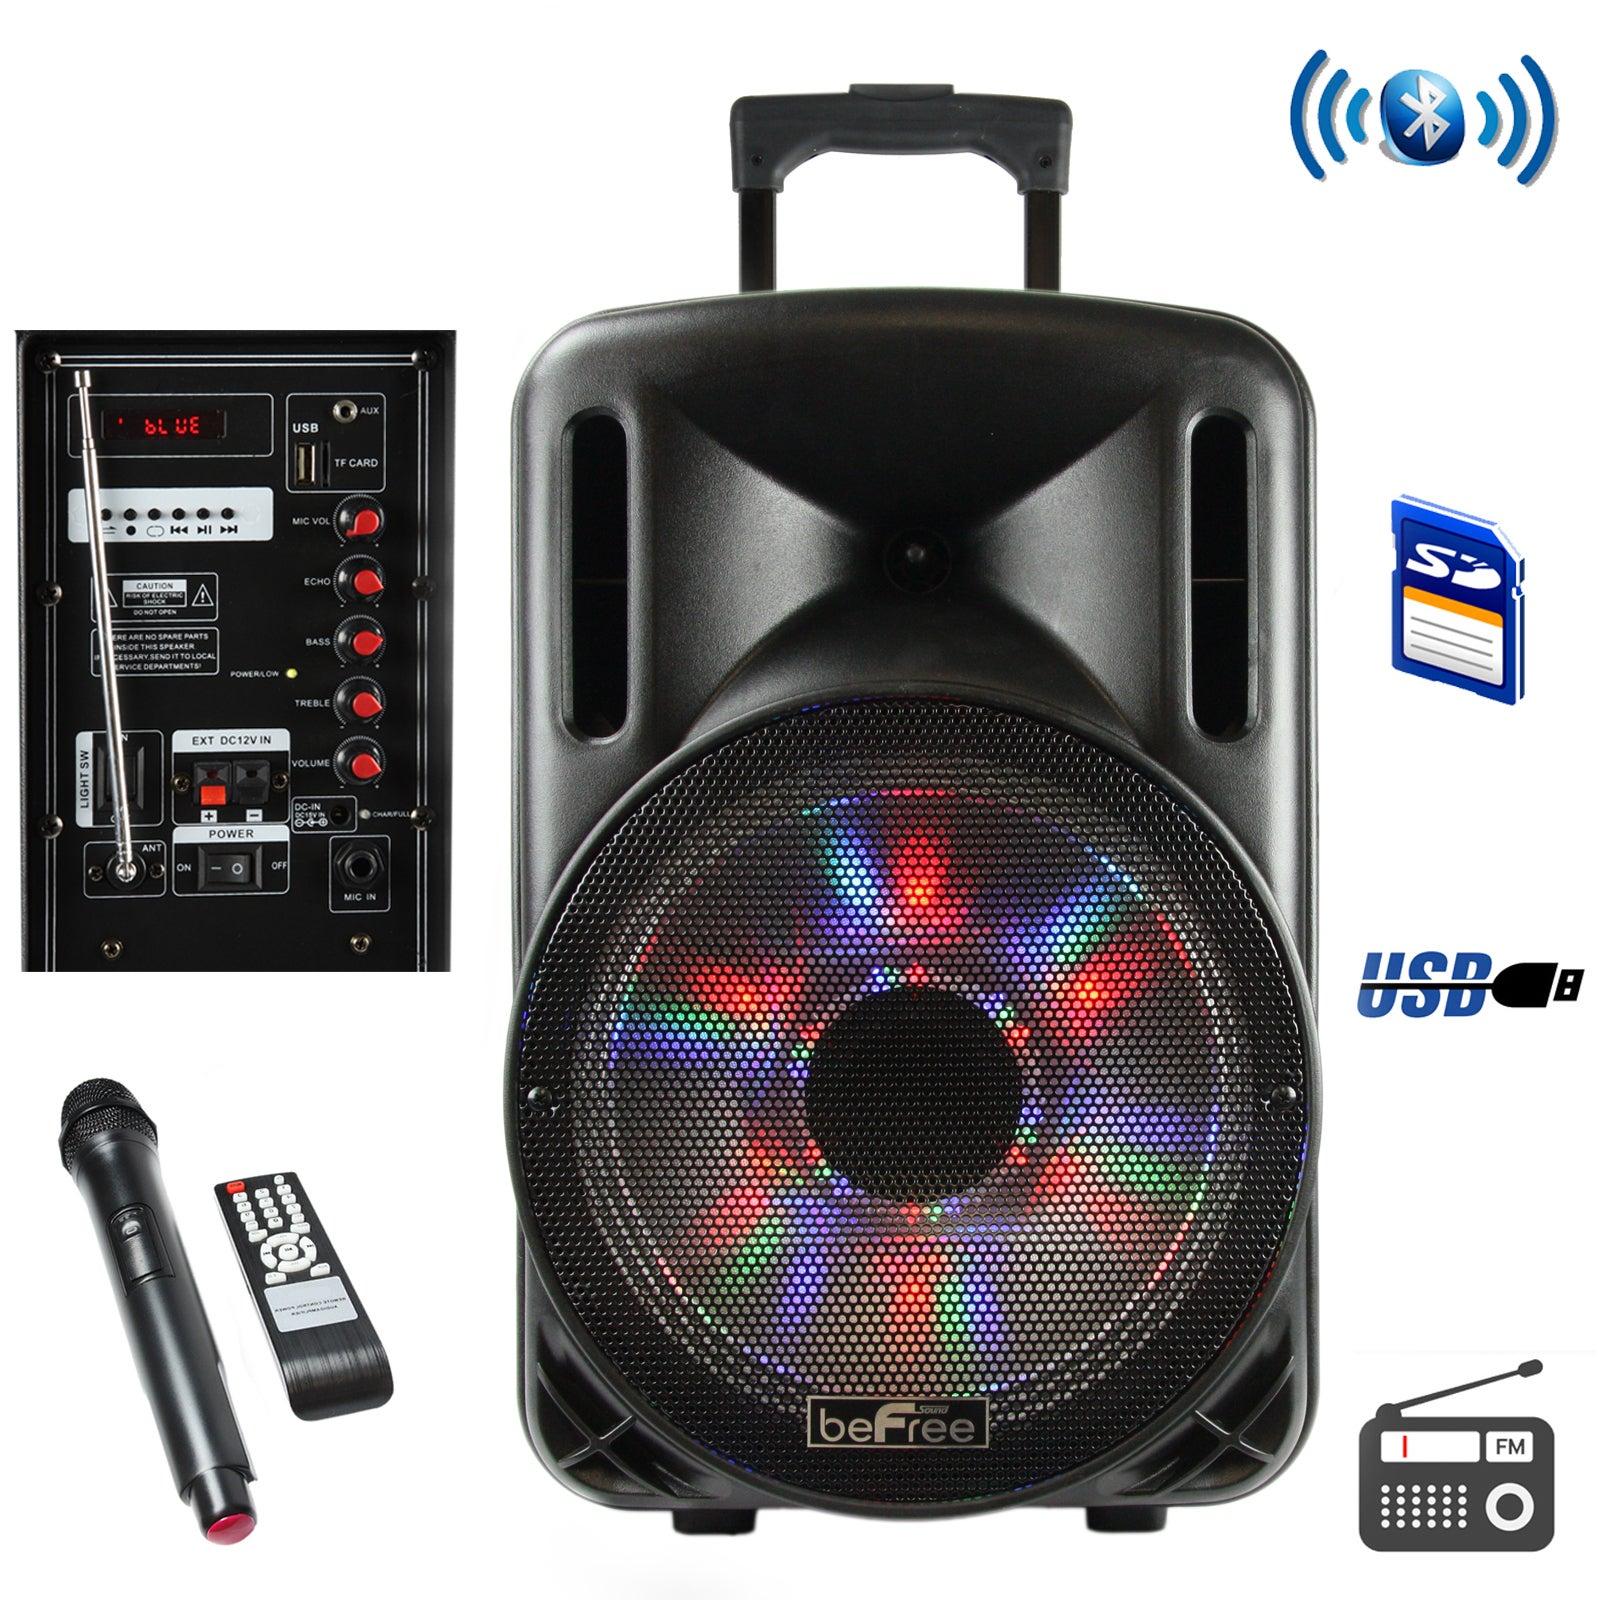 beFree Sound 12 Inch Bluetooth Rechargeable Party Speaker...